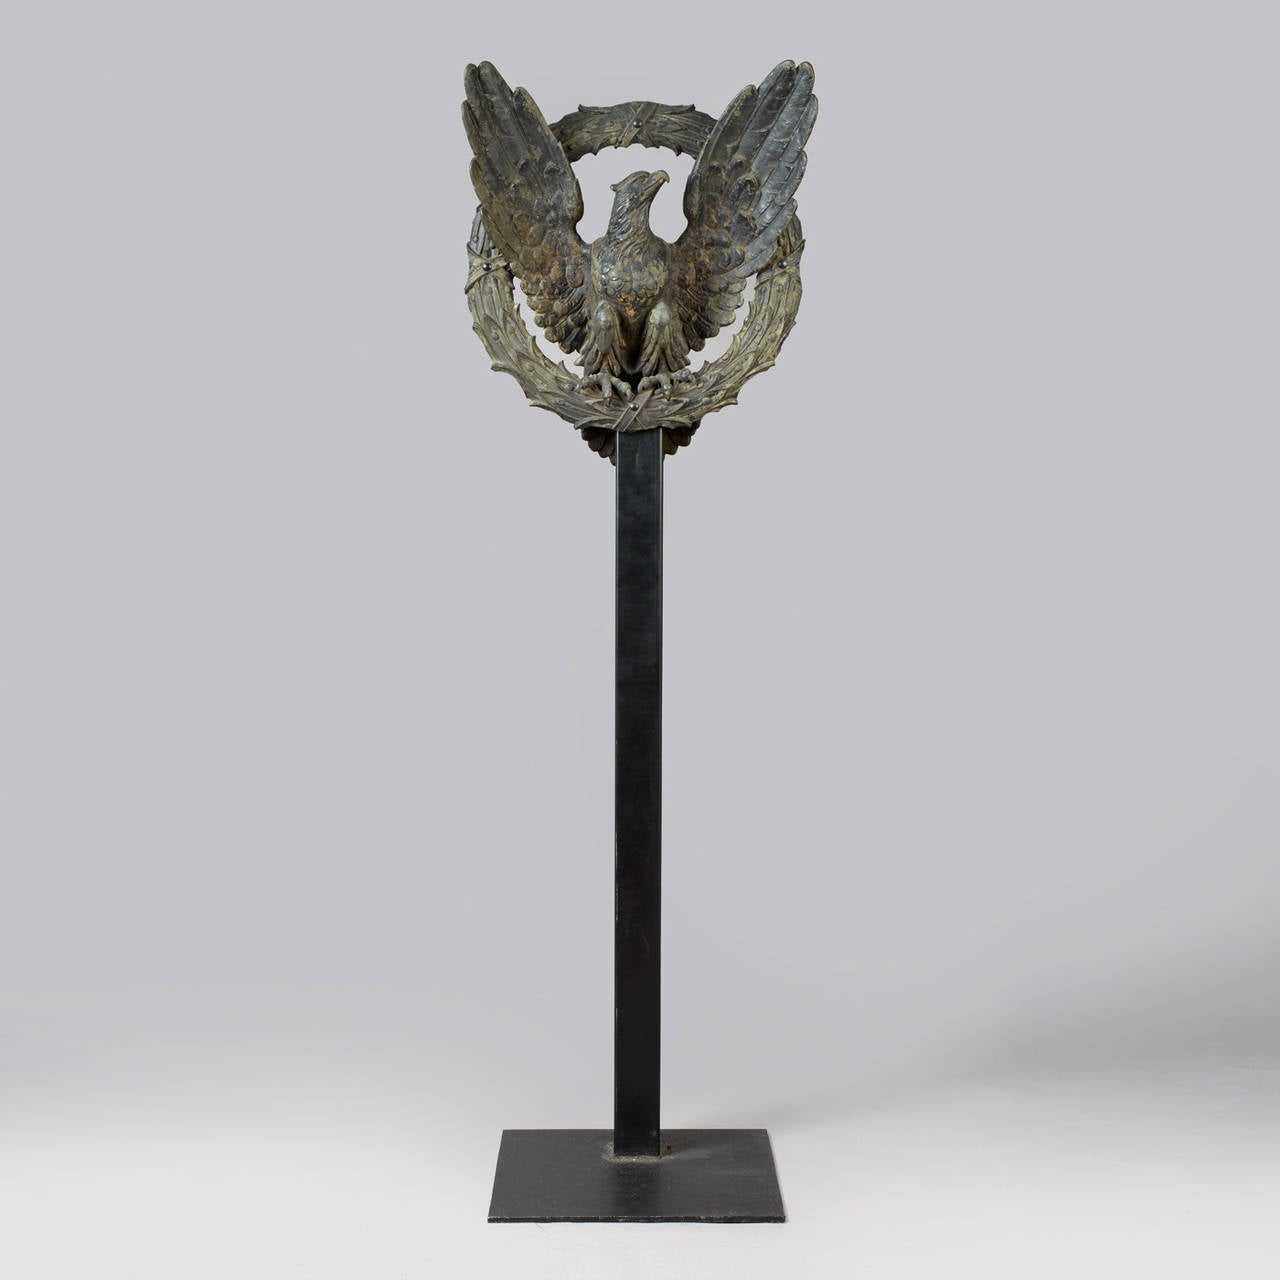 American. circa 1880-1910. Cast iron, patinated. The full body hollow cast eagle figure is mounted within a concave cast laurel wreath. Condition: Fine condition, traces of black paint now showing with a weathered patina. Mounted on contemporary